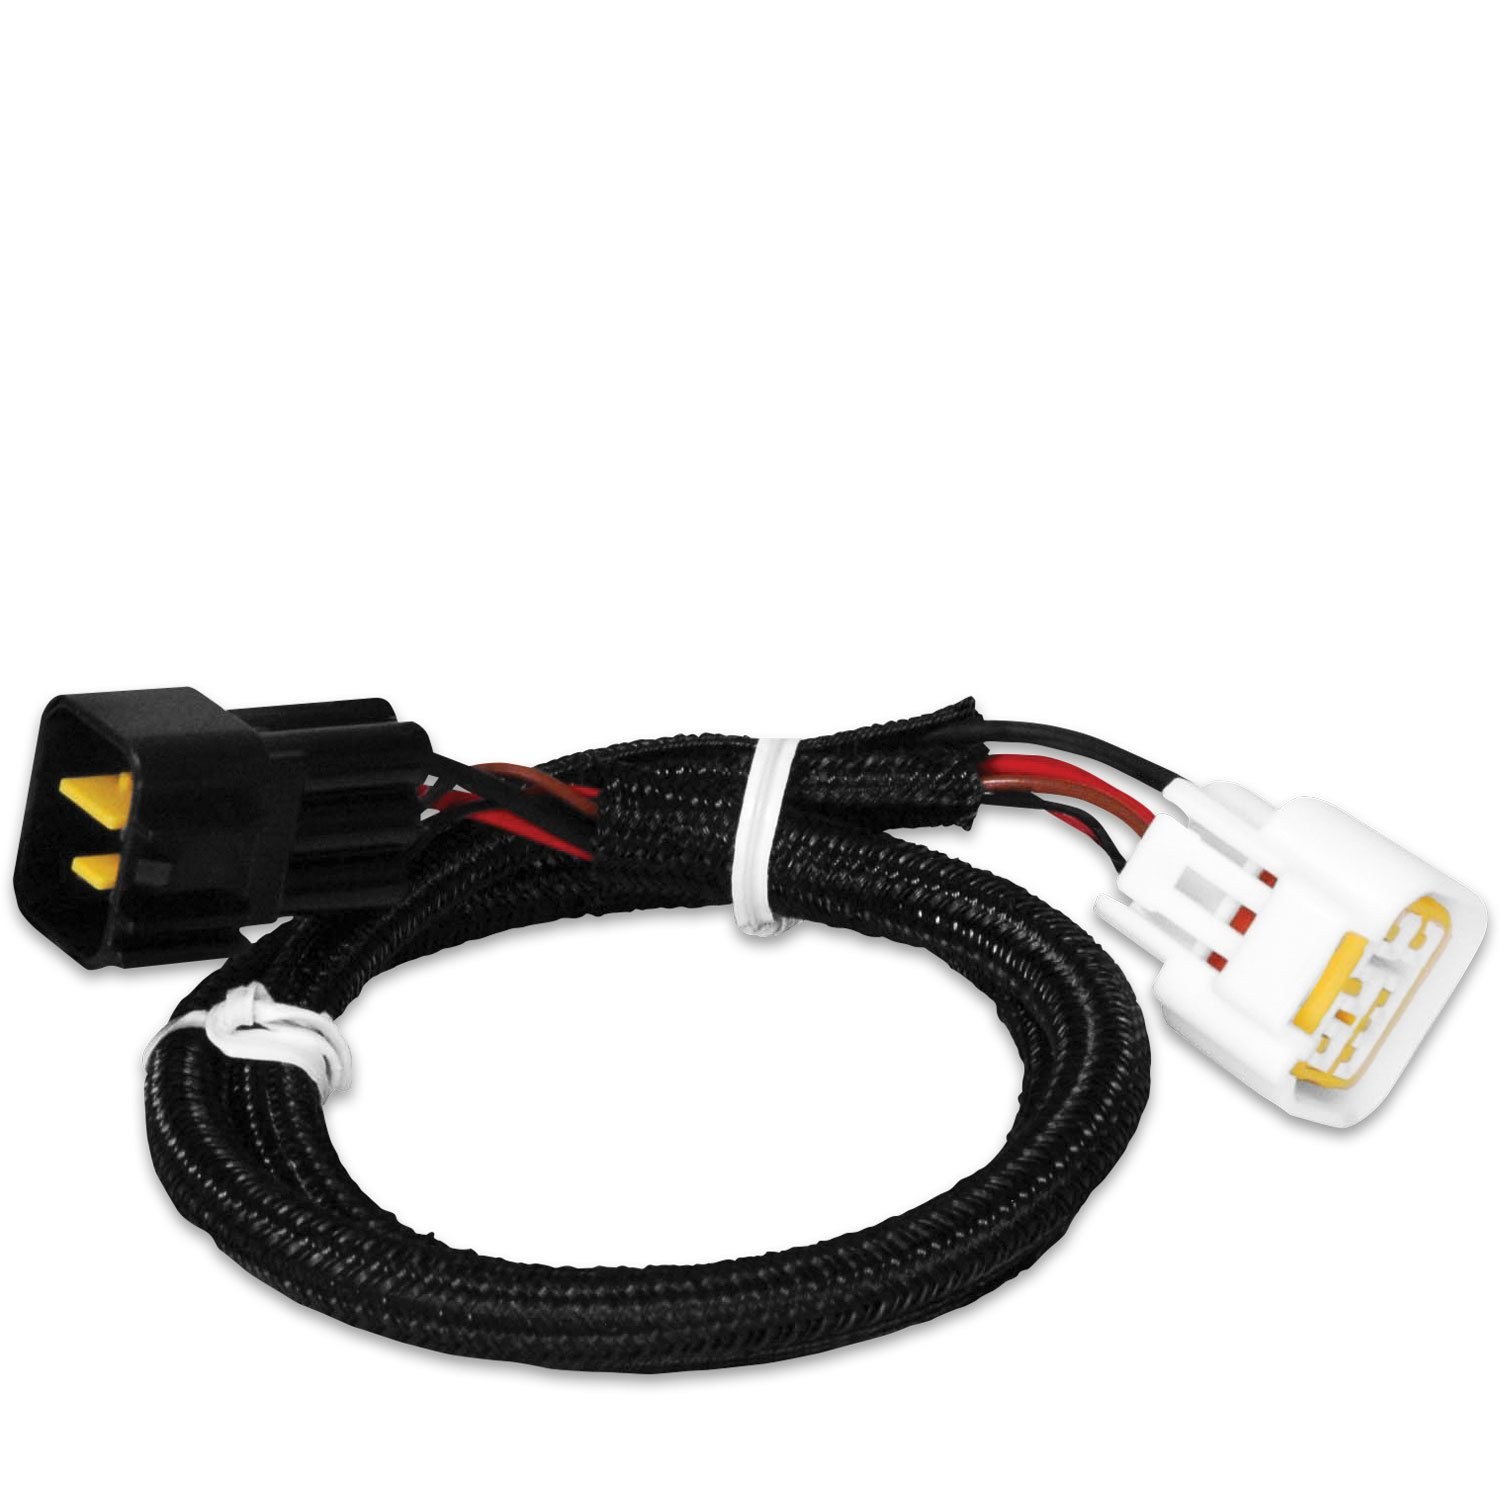 7786 - CAN-Bus Extension Harness for Power Grid System Image